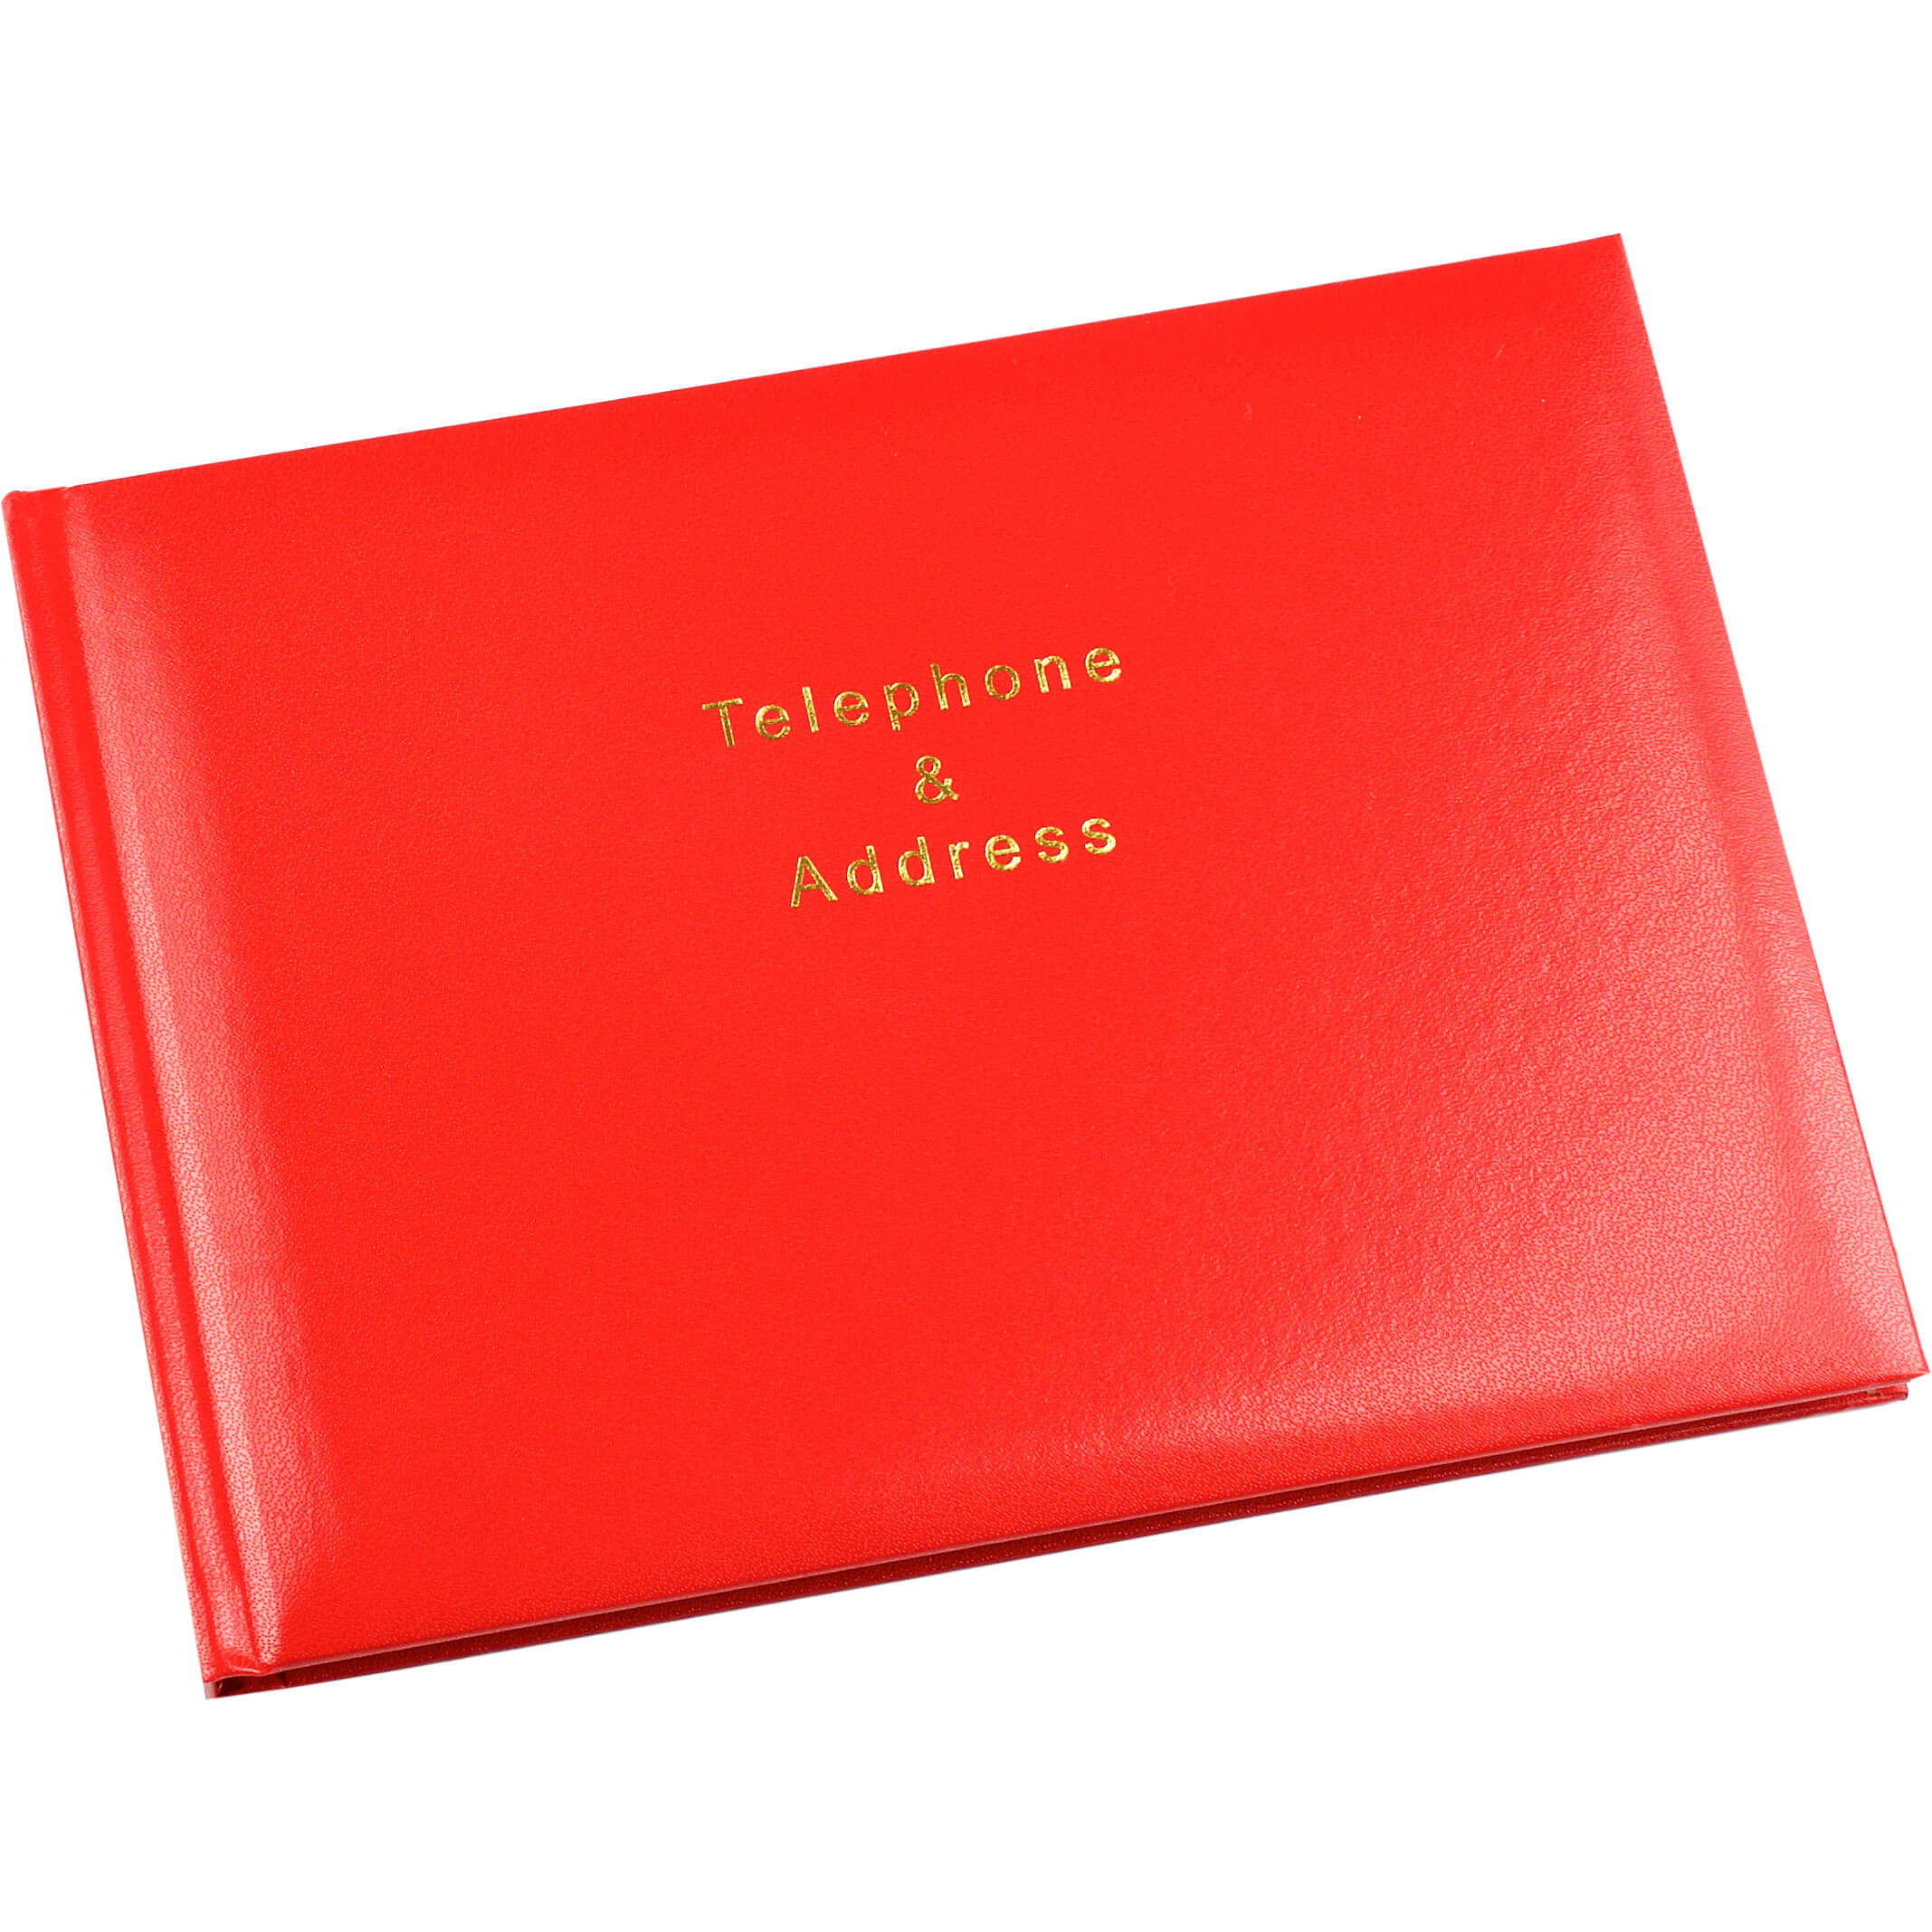 Esposti Telephone and Address Book - 64 pages (128 Sides) - Red - Size 215 x 160mm